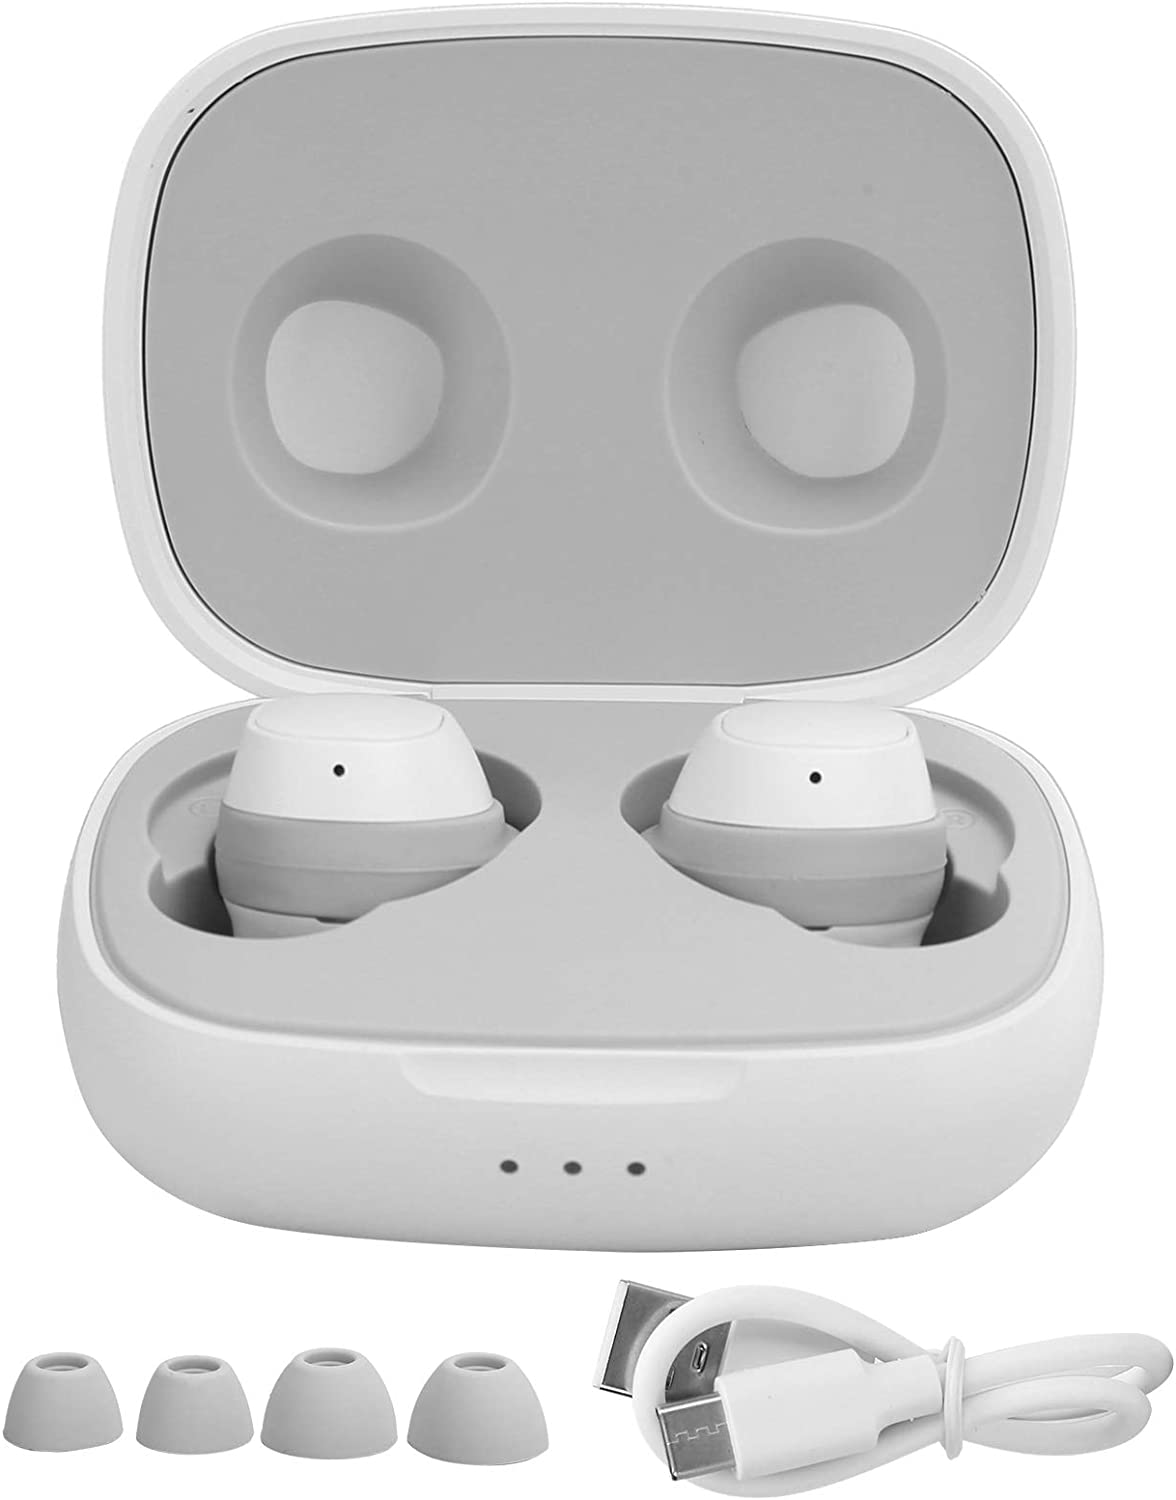 40% OFF Dallas Mall Cheap Sale Wireless Earbuds Headset Highdefinition Smart Touc Quality Sound